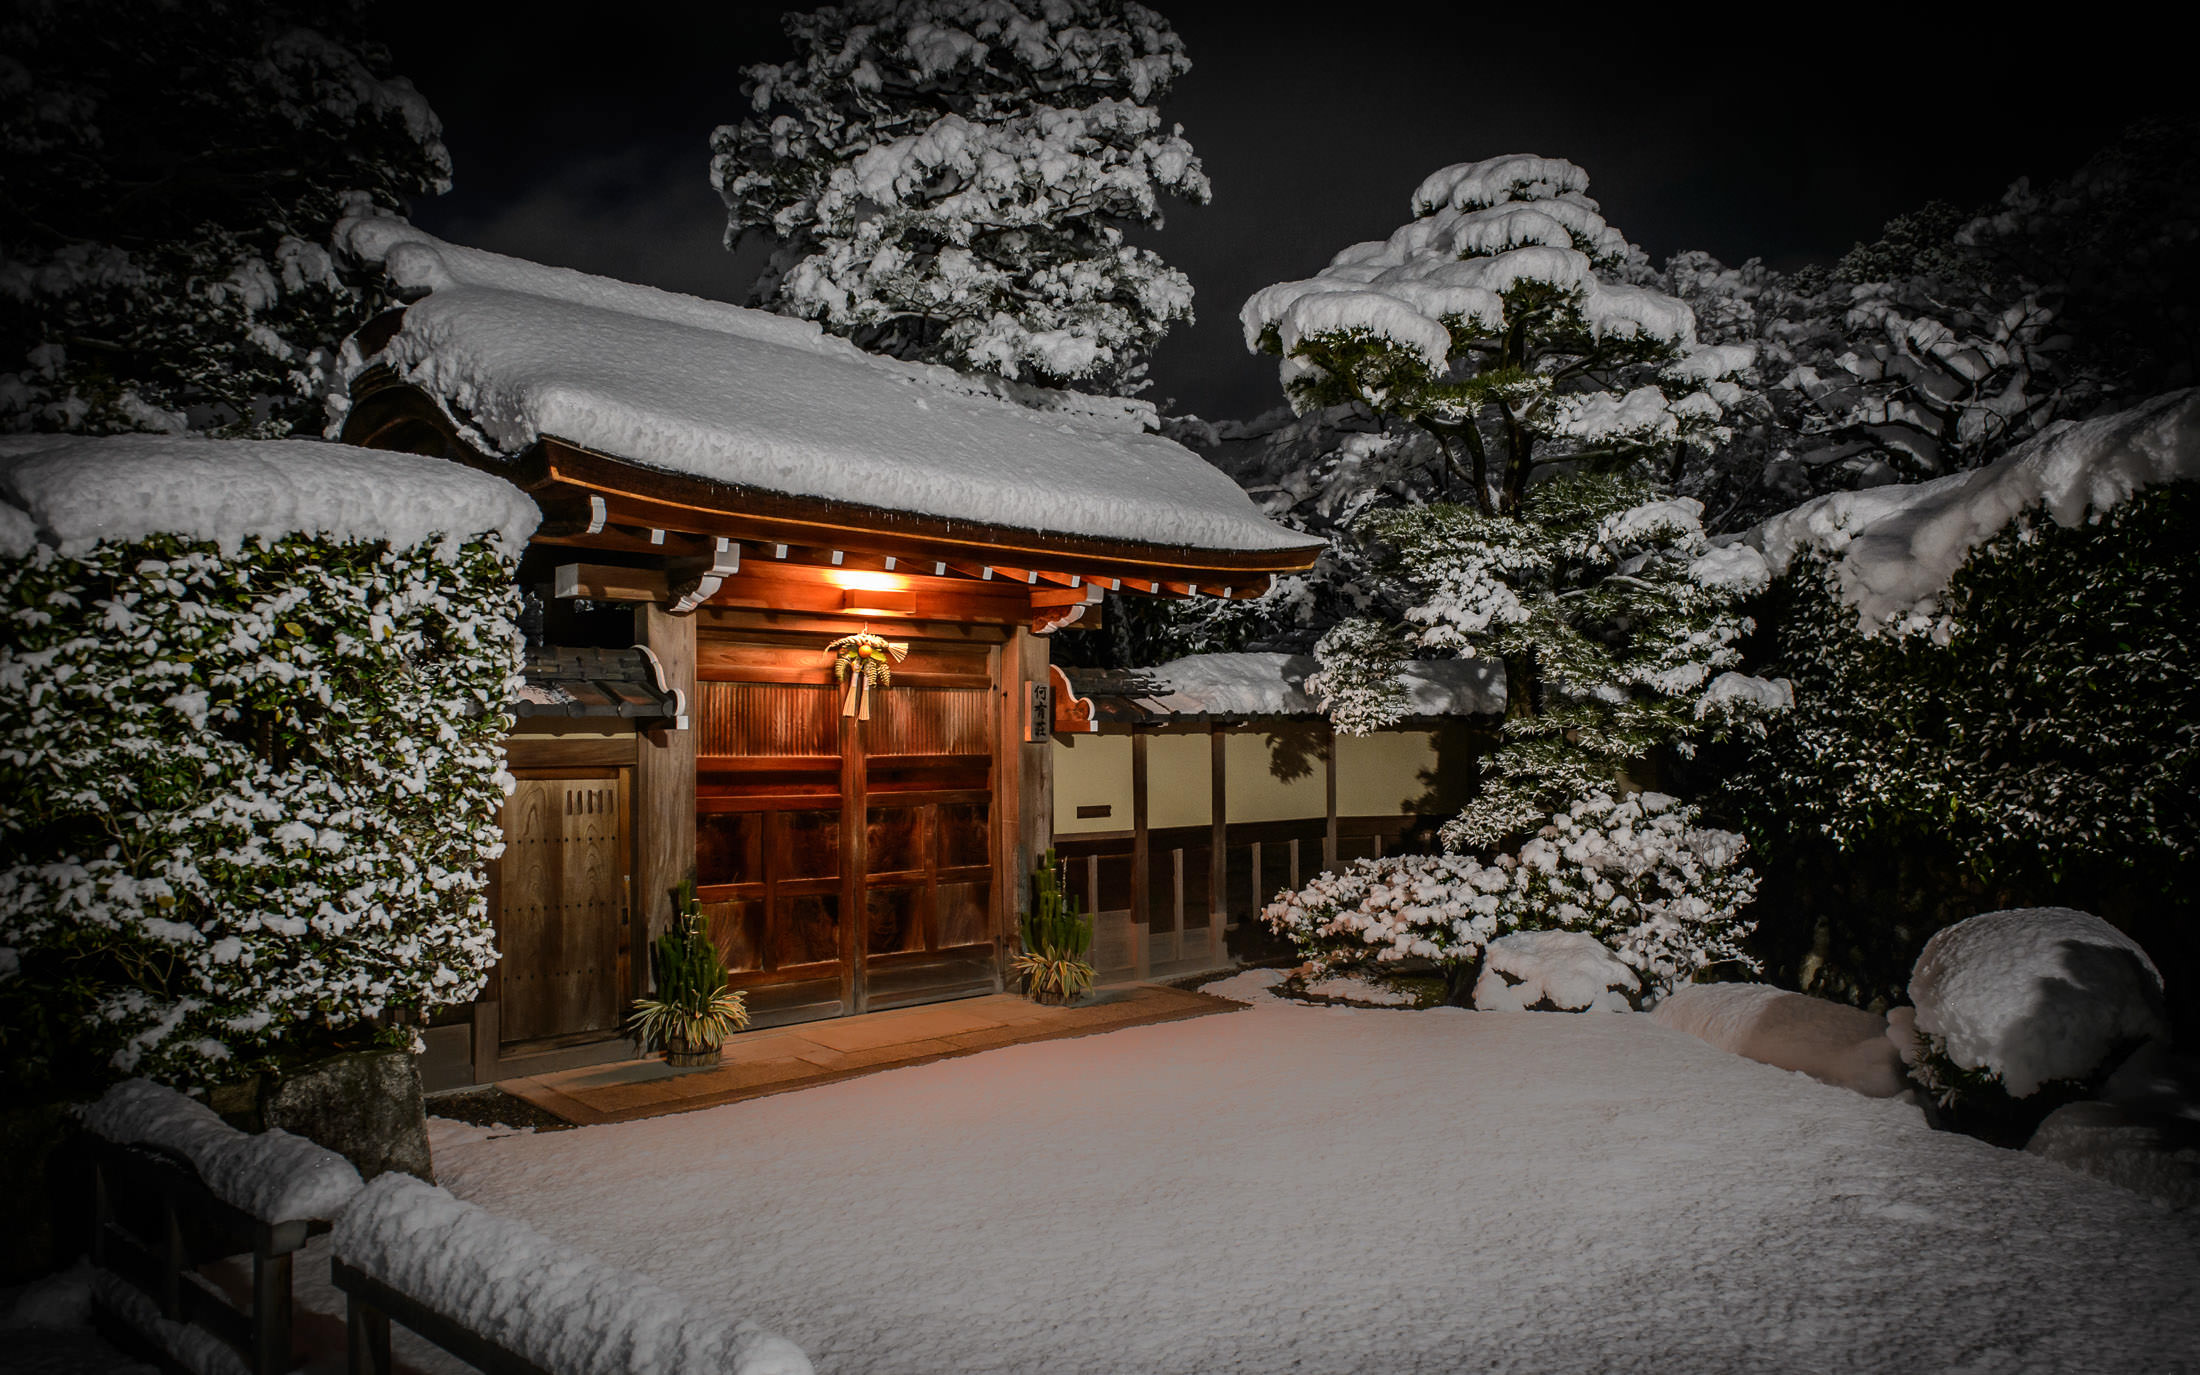 Snow Falling Video Wallpaper Jeffrey Friedl S Blog 187 Kyoto At Night During A Heavy Snow